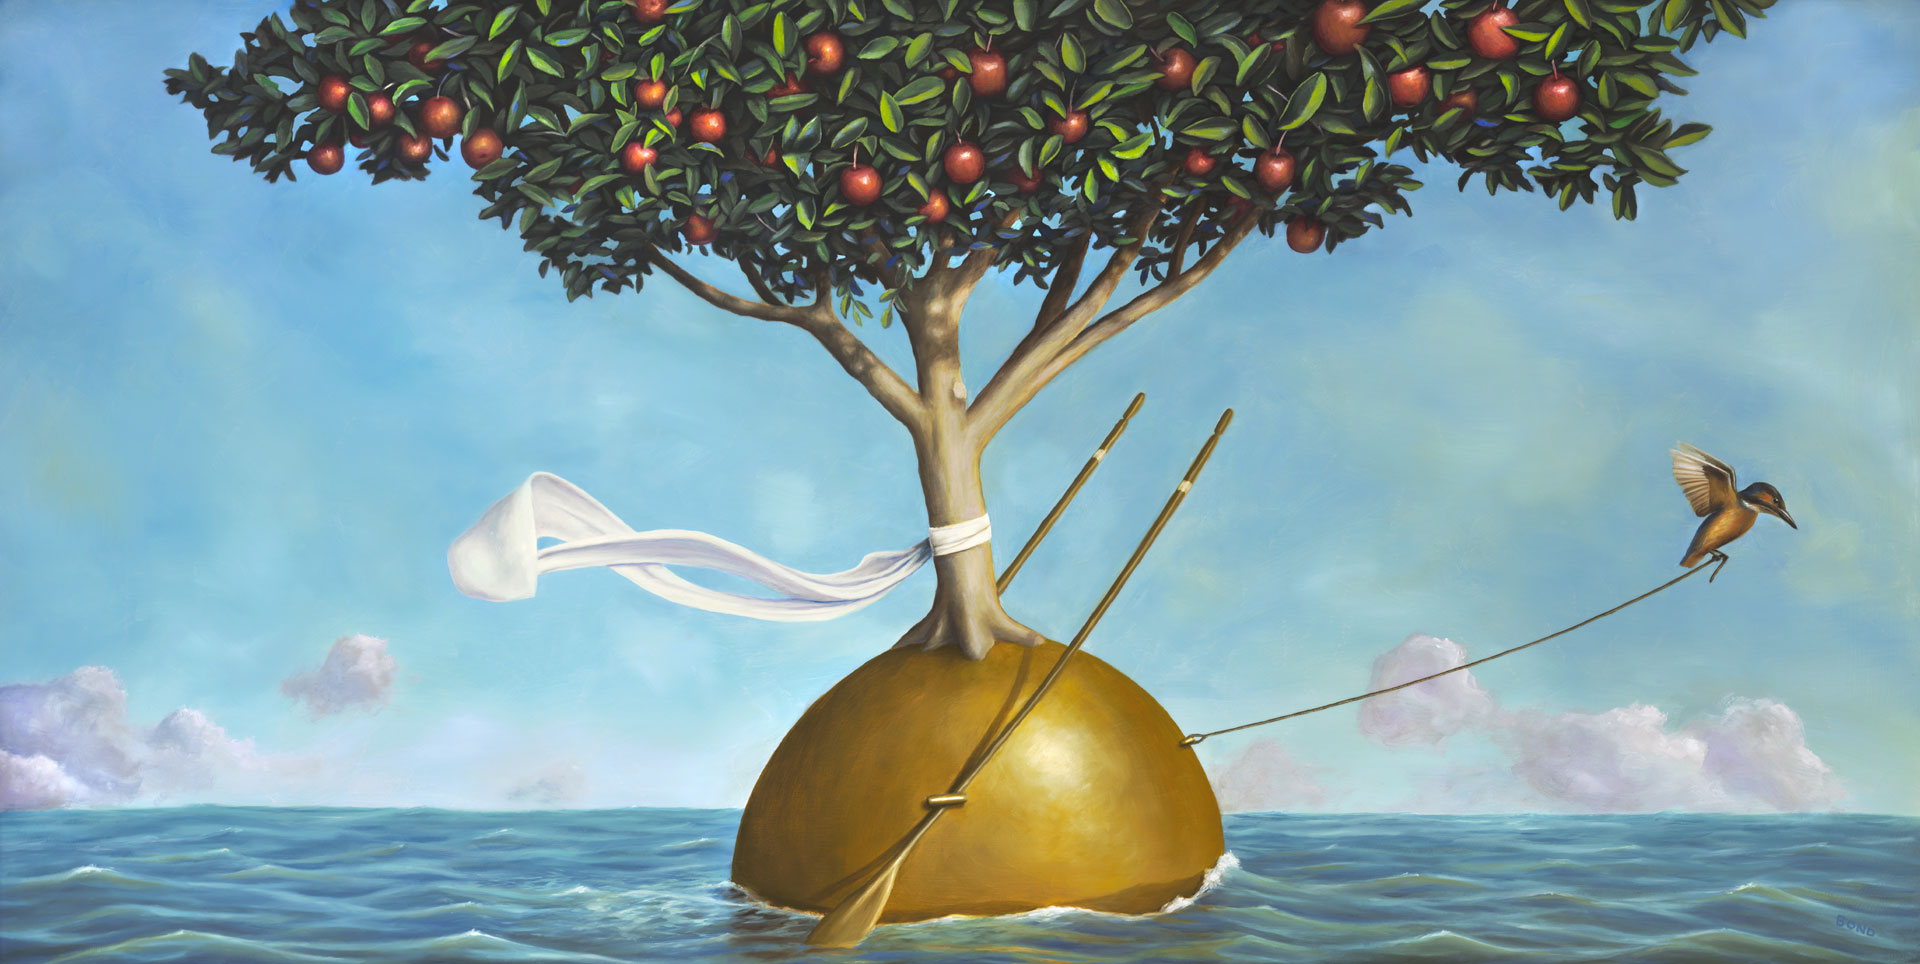 Passage of the Wisdom Keeper, painting of a kingfisher bird pulling an apple tree wearing a scarf with rope through the ocean, wisdom, apple, tree, sea, waves, oars, scarf, bird, kingfisher, orb, clouds, trompe l'oeil, soulful uplifting inspirational art, soul stirring illusion art, romantic art,  surrealism, surreal art, dreamlike imagery, fanciful art, fantasy art, dreamscape visual, metaphysical art, spiritual painting, metaphysical painting, spiritual art, whimsical art, whimsy art, dream art, fantastic realism art, limited edition giclee, signed art print, fine art reproduction, original magic realism oil painting by Paul Bond